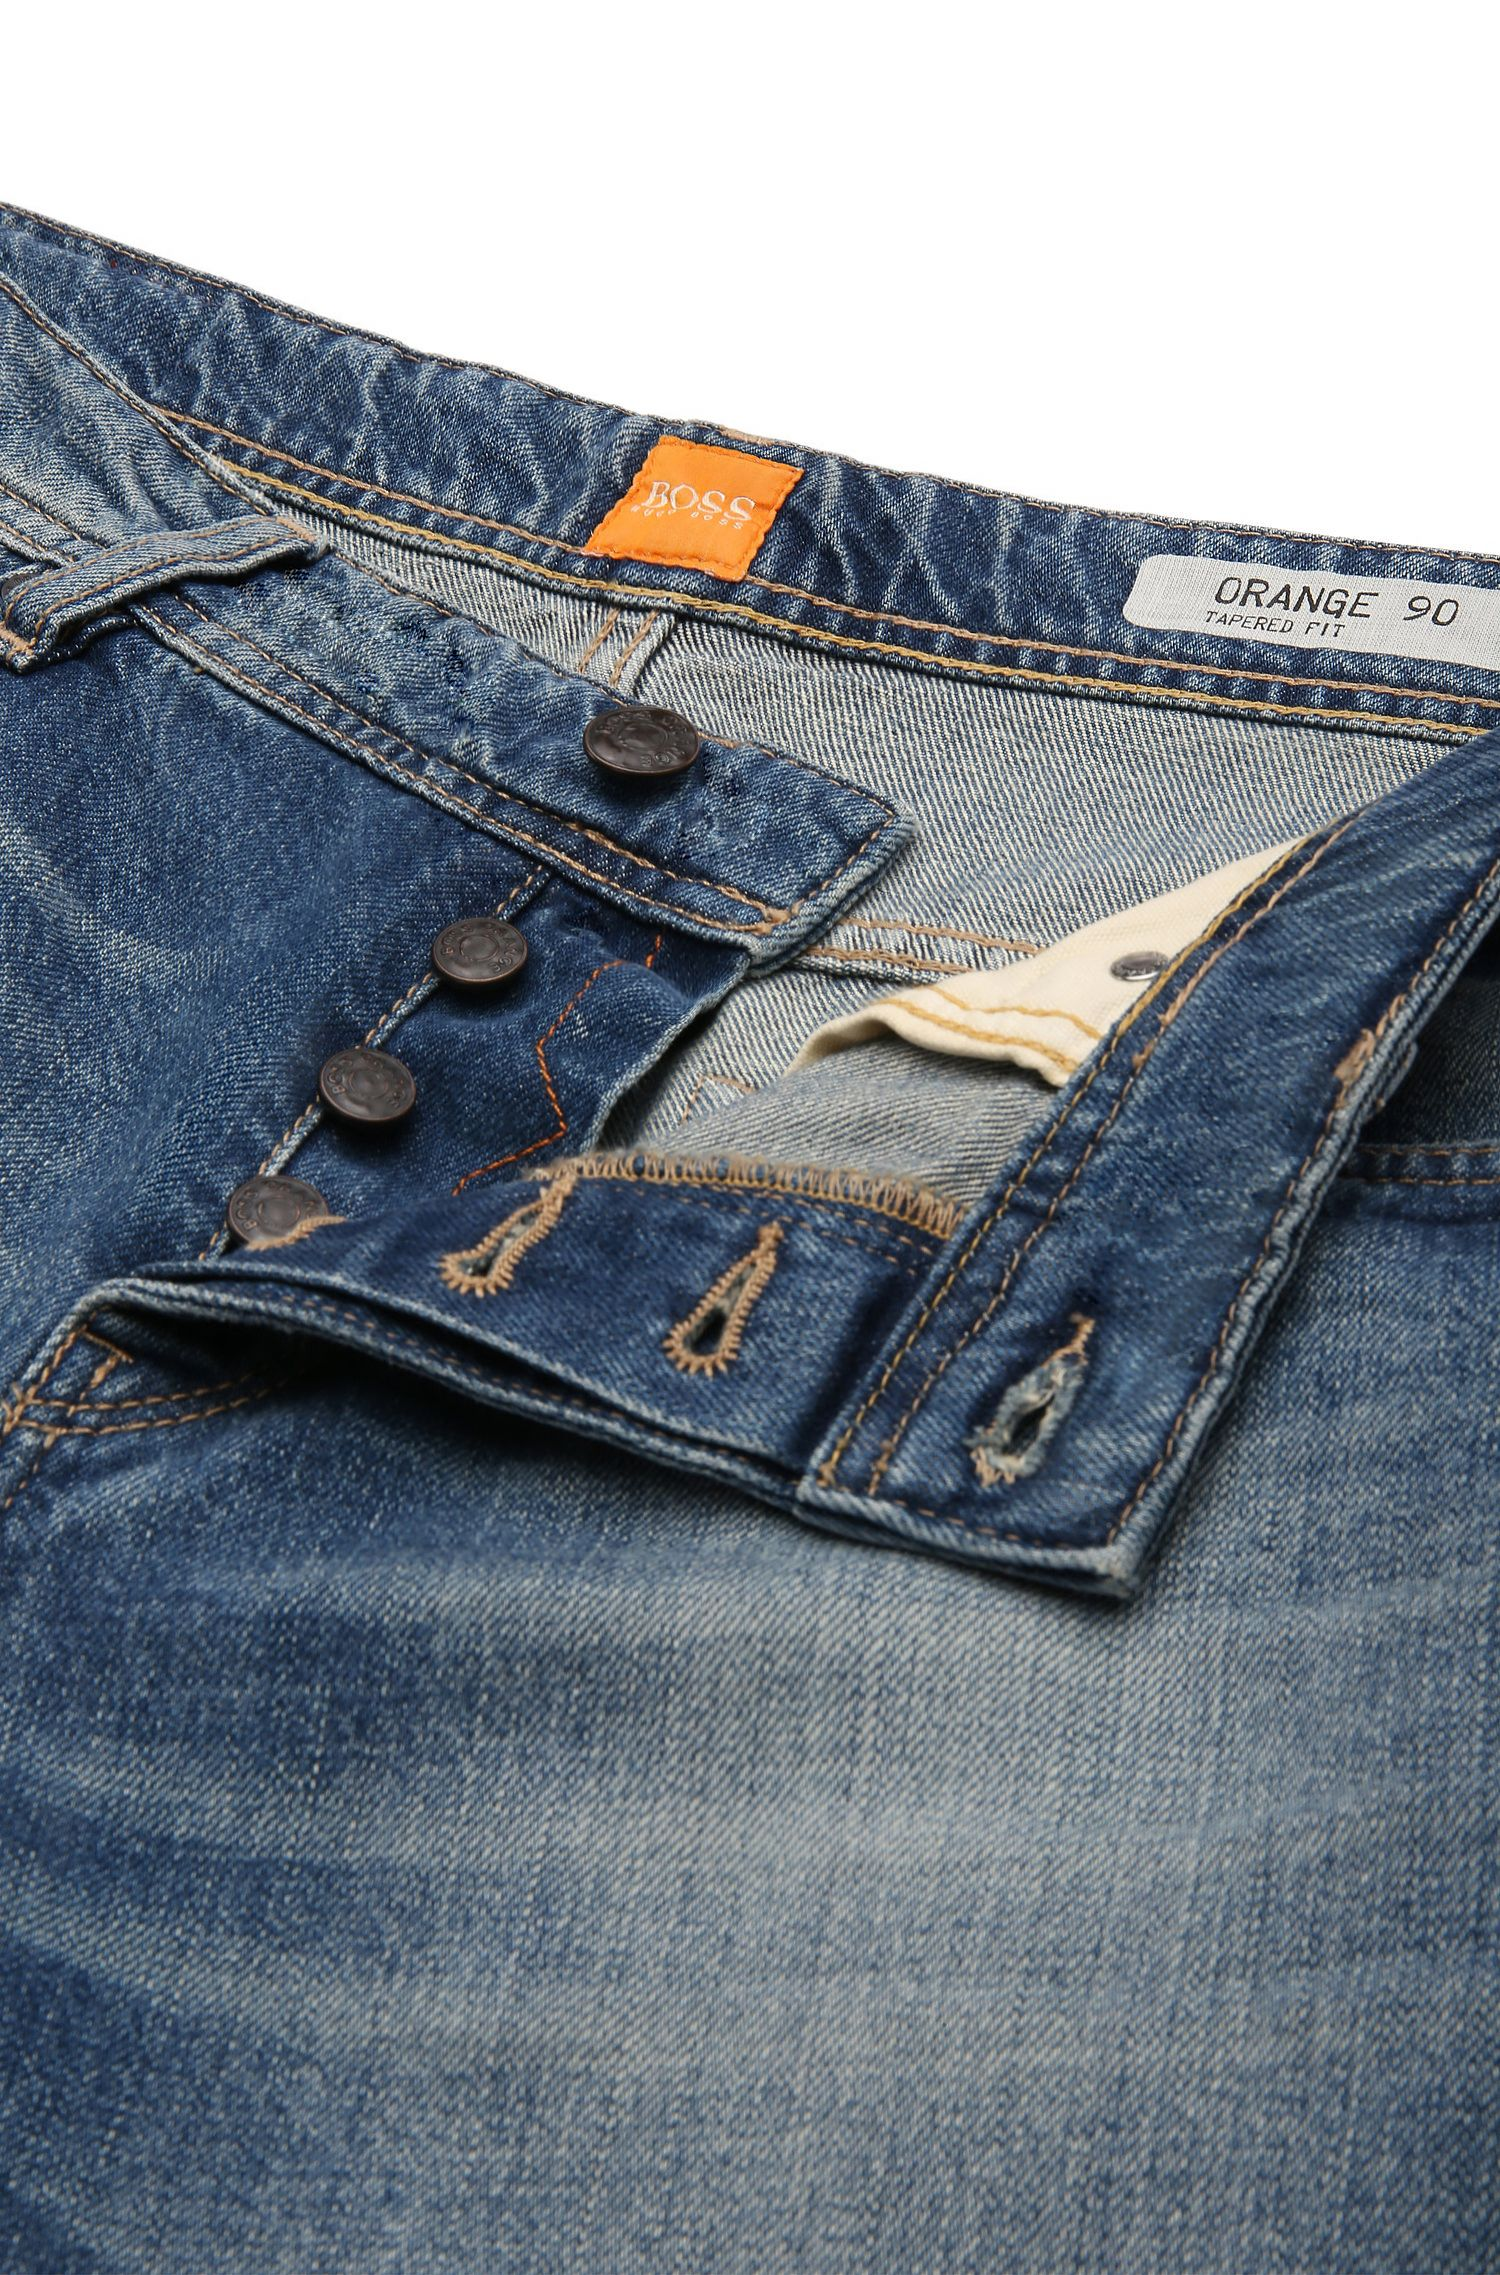 Cotton Blend Jean, Slim Fit | Orange90, Blue